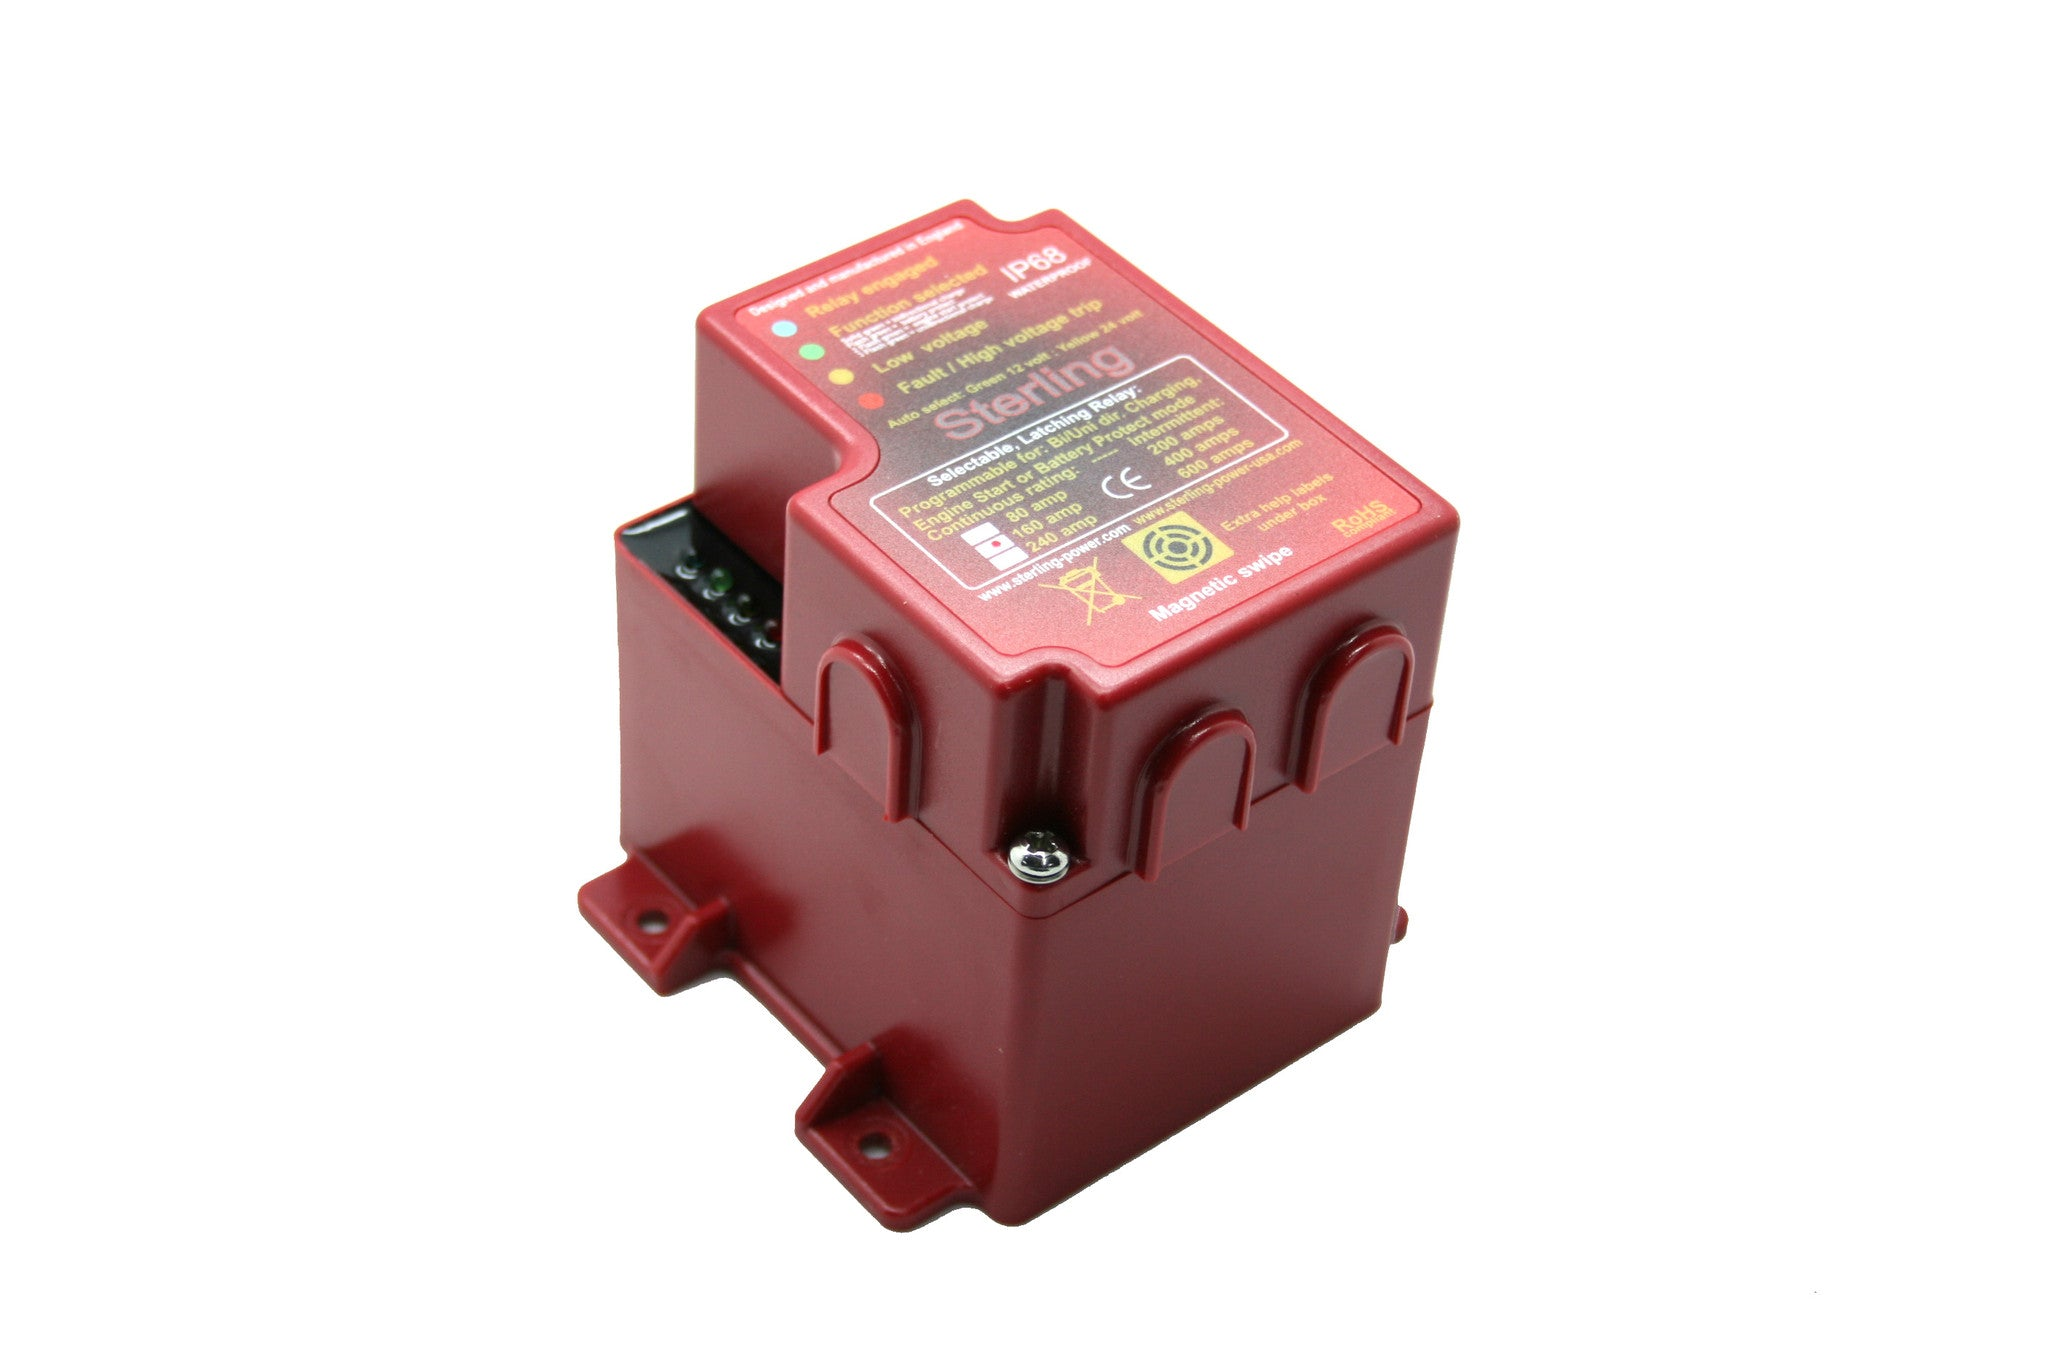 used sf-4022 manual charger with engine start and battery tester